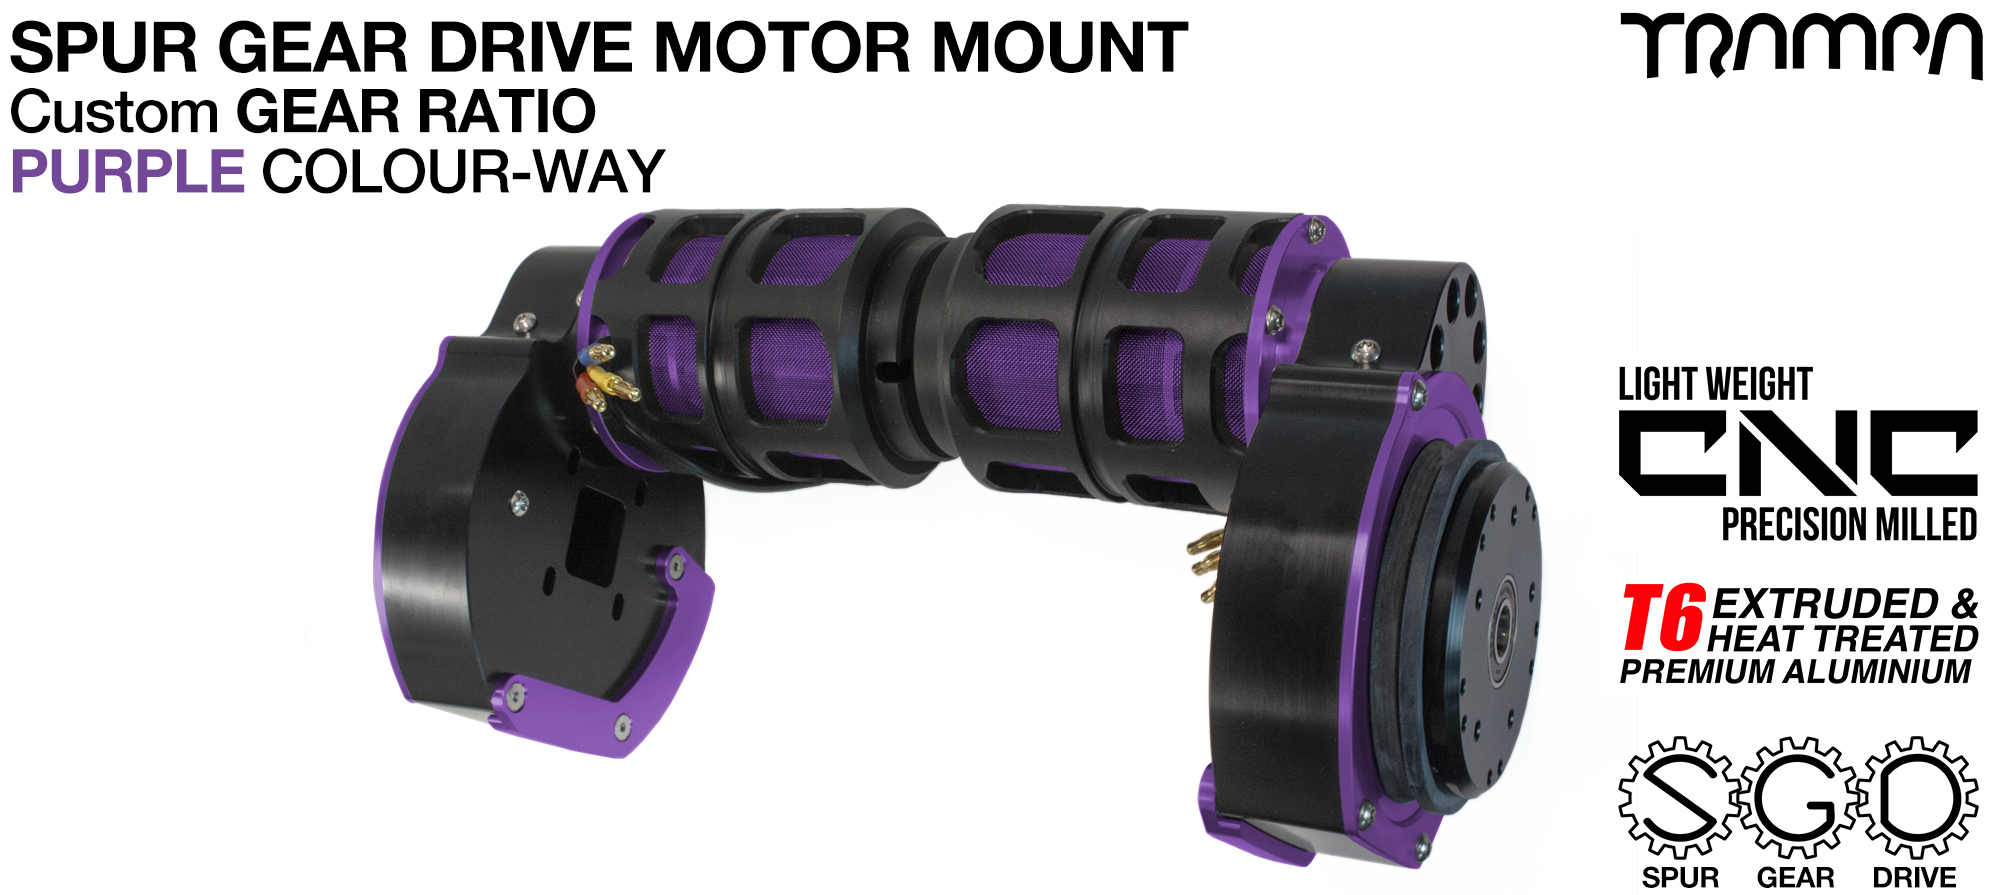 PURPLE 2WD Spur Gear Drive Motor Mount